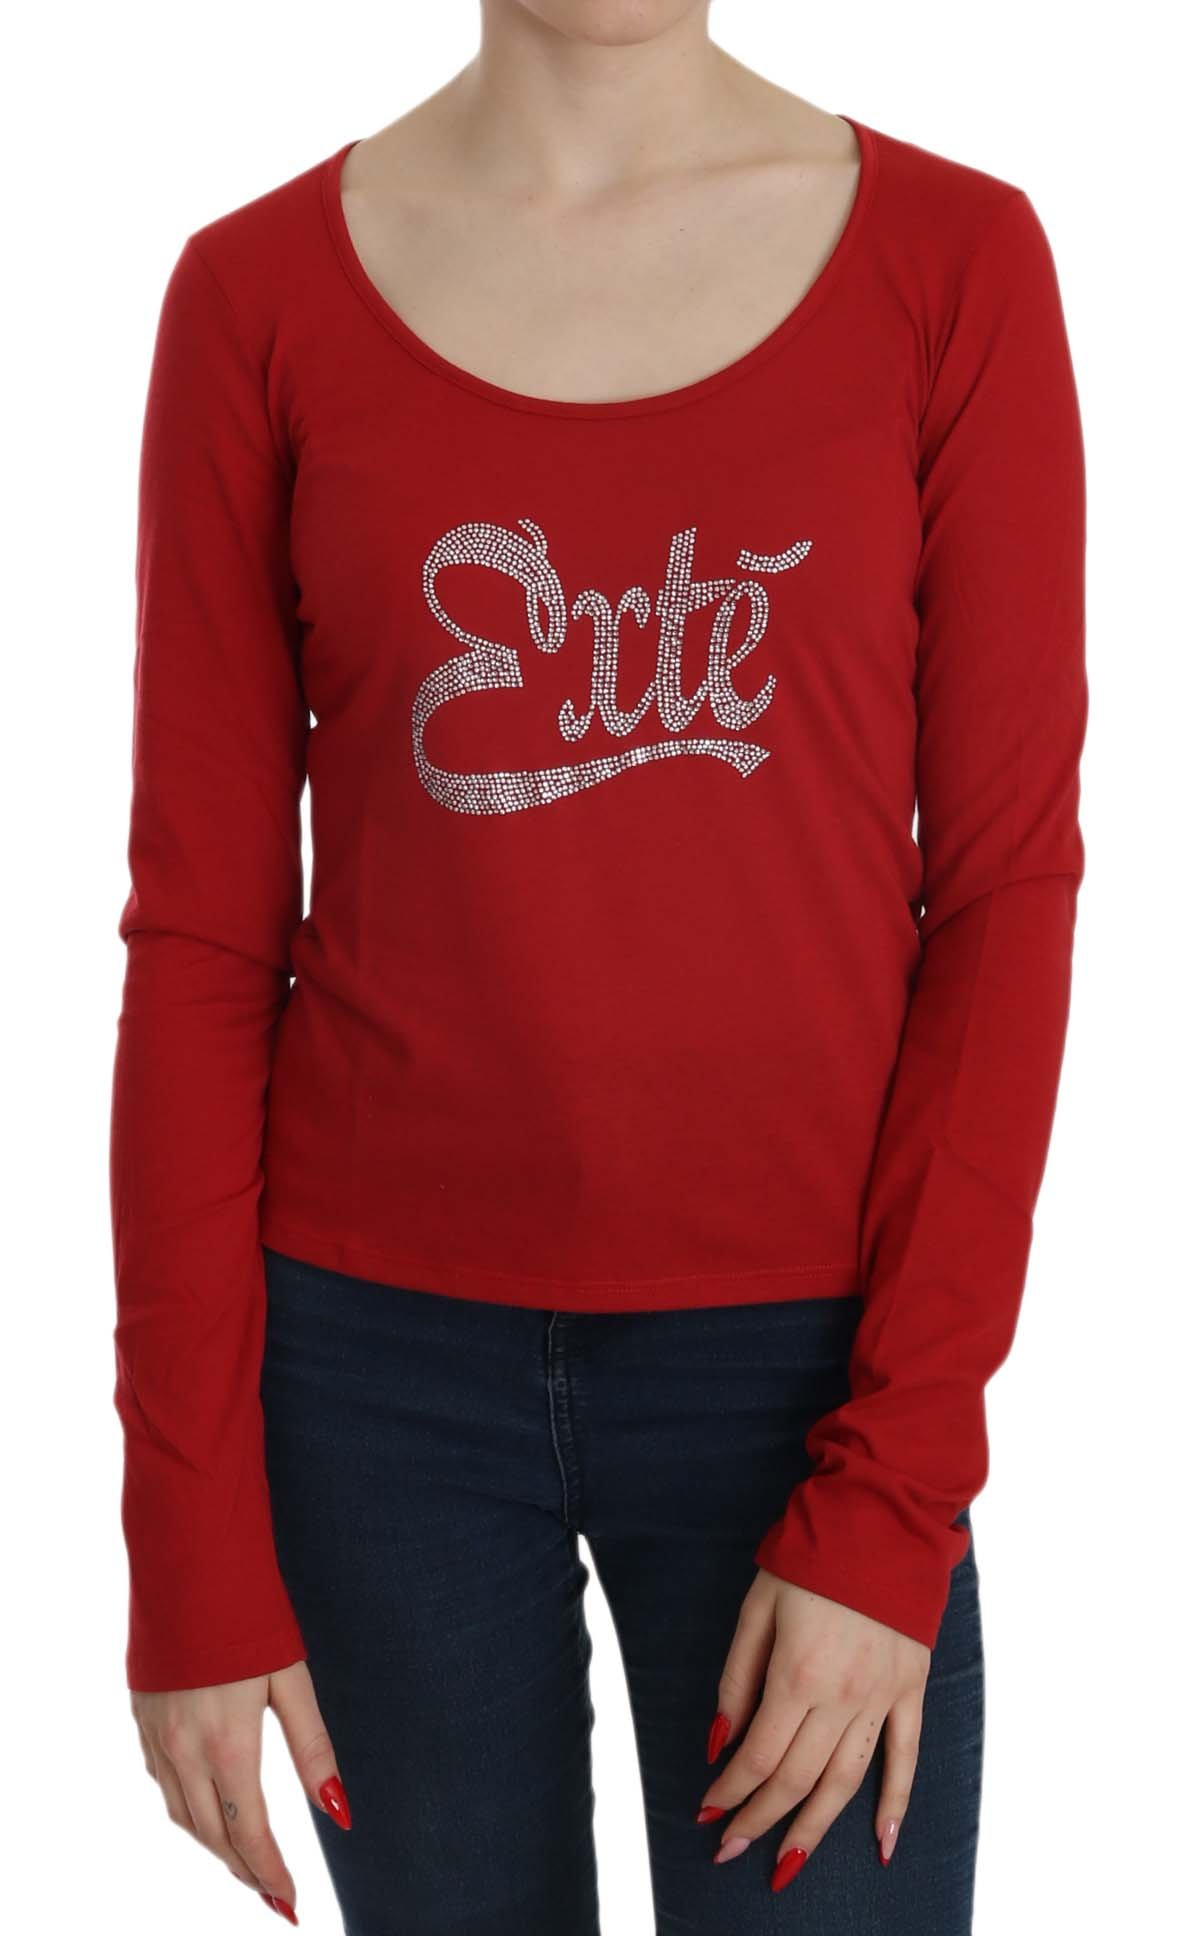 Exte Women's Crystal Embellished LS Top Red TSH3921 - IT38|XS